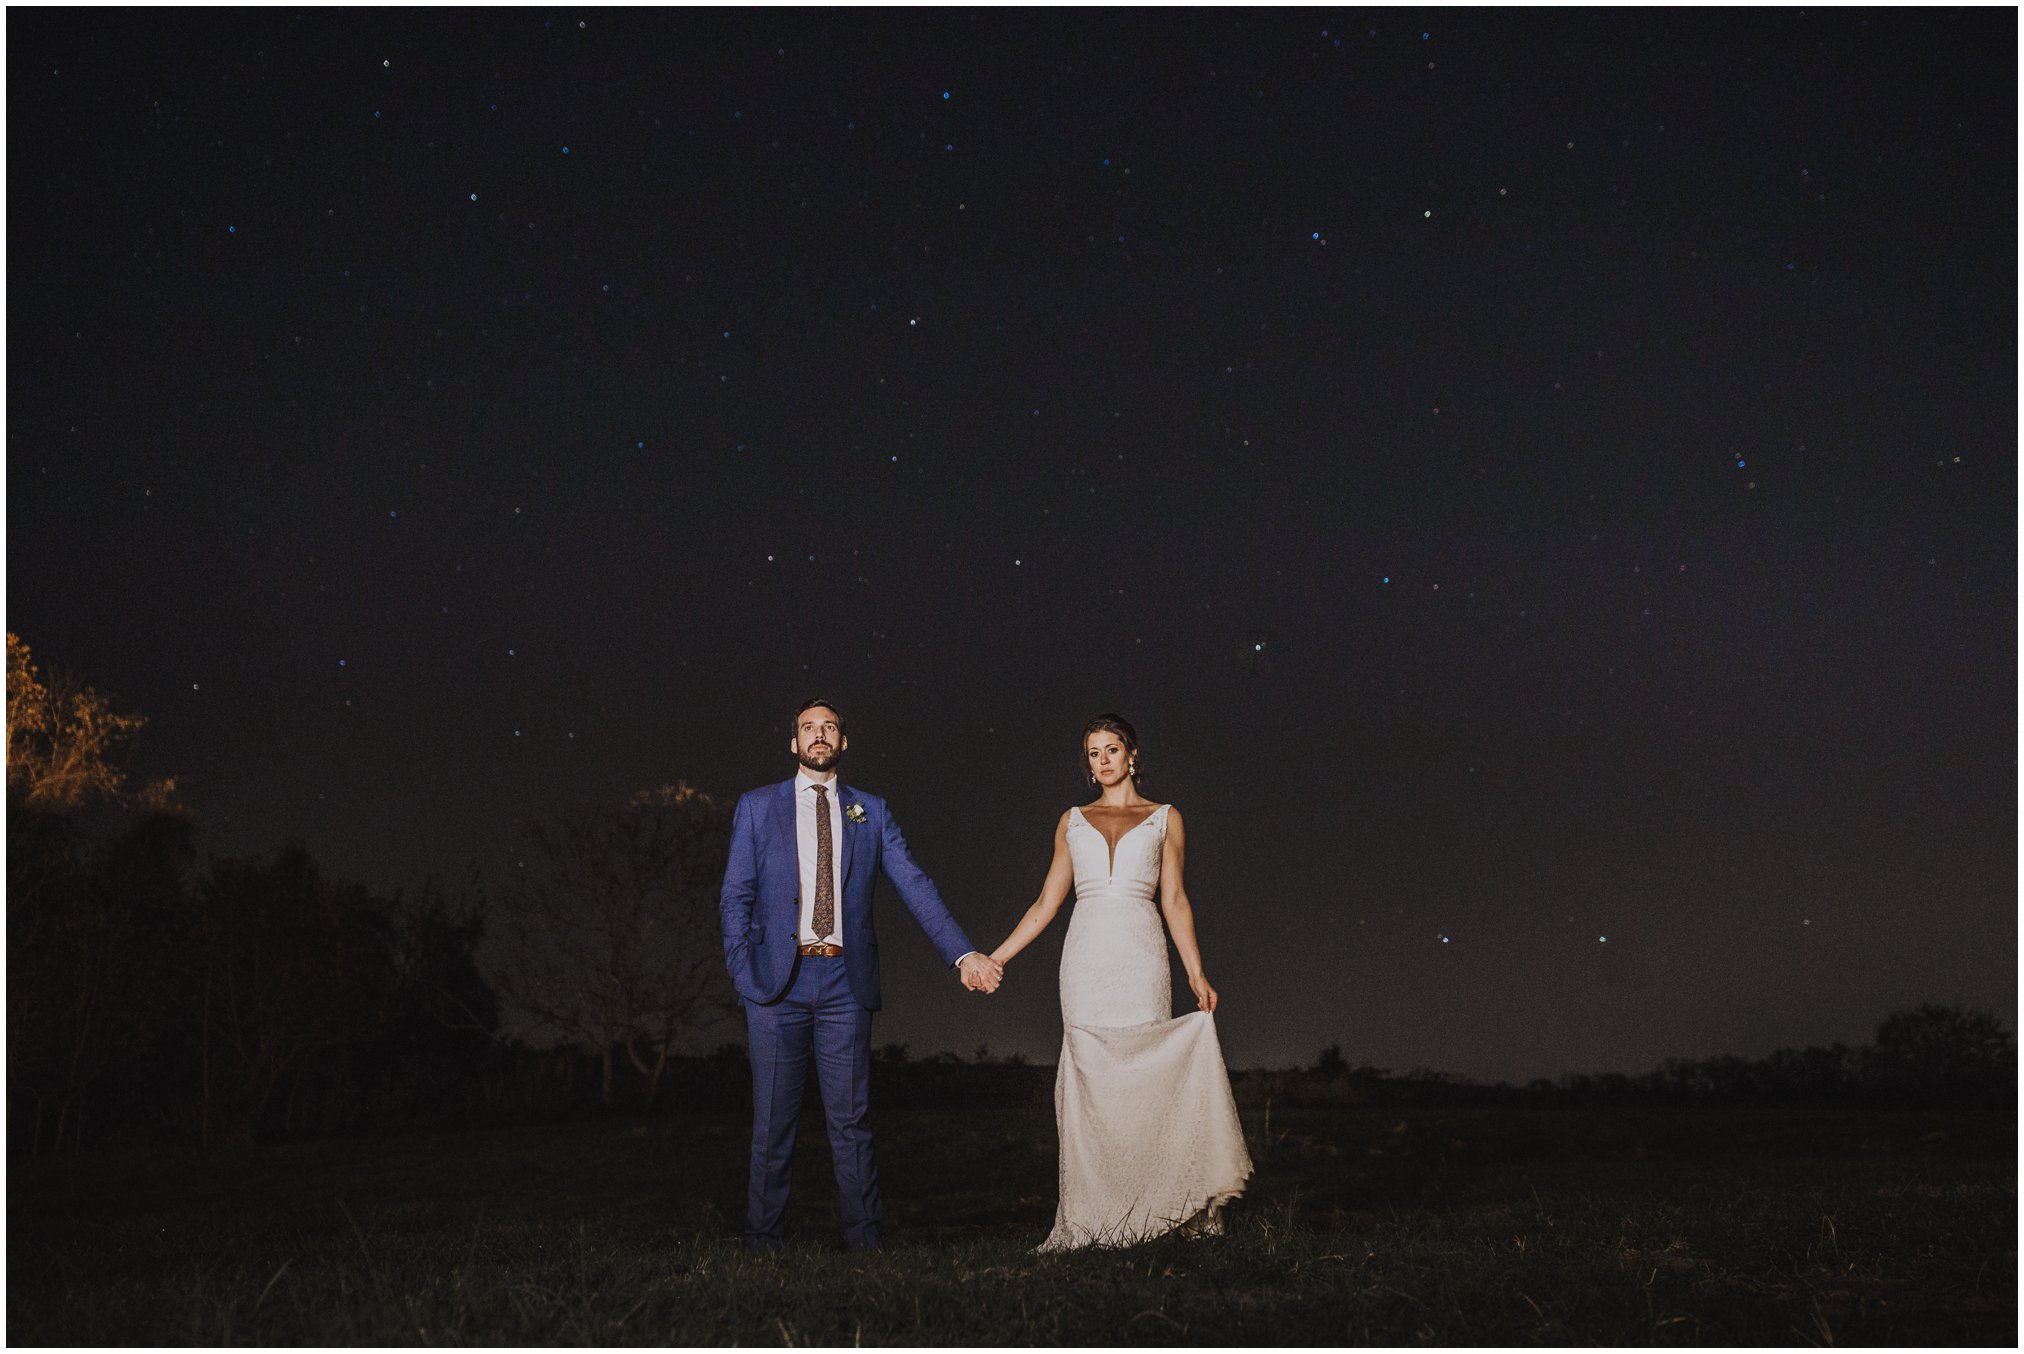 Night Time wedding pictures with stars in the sky